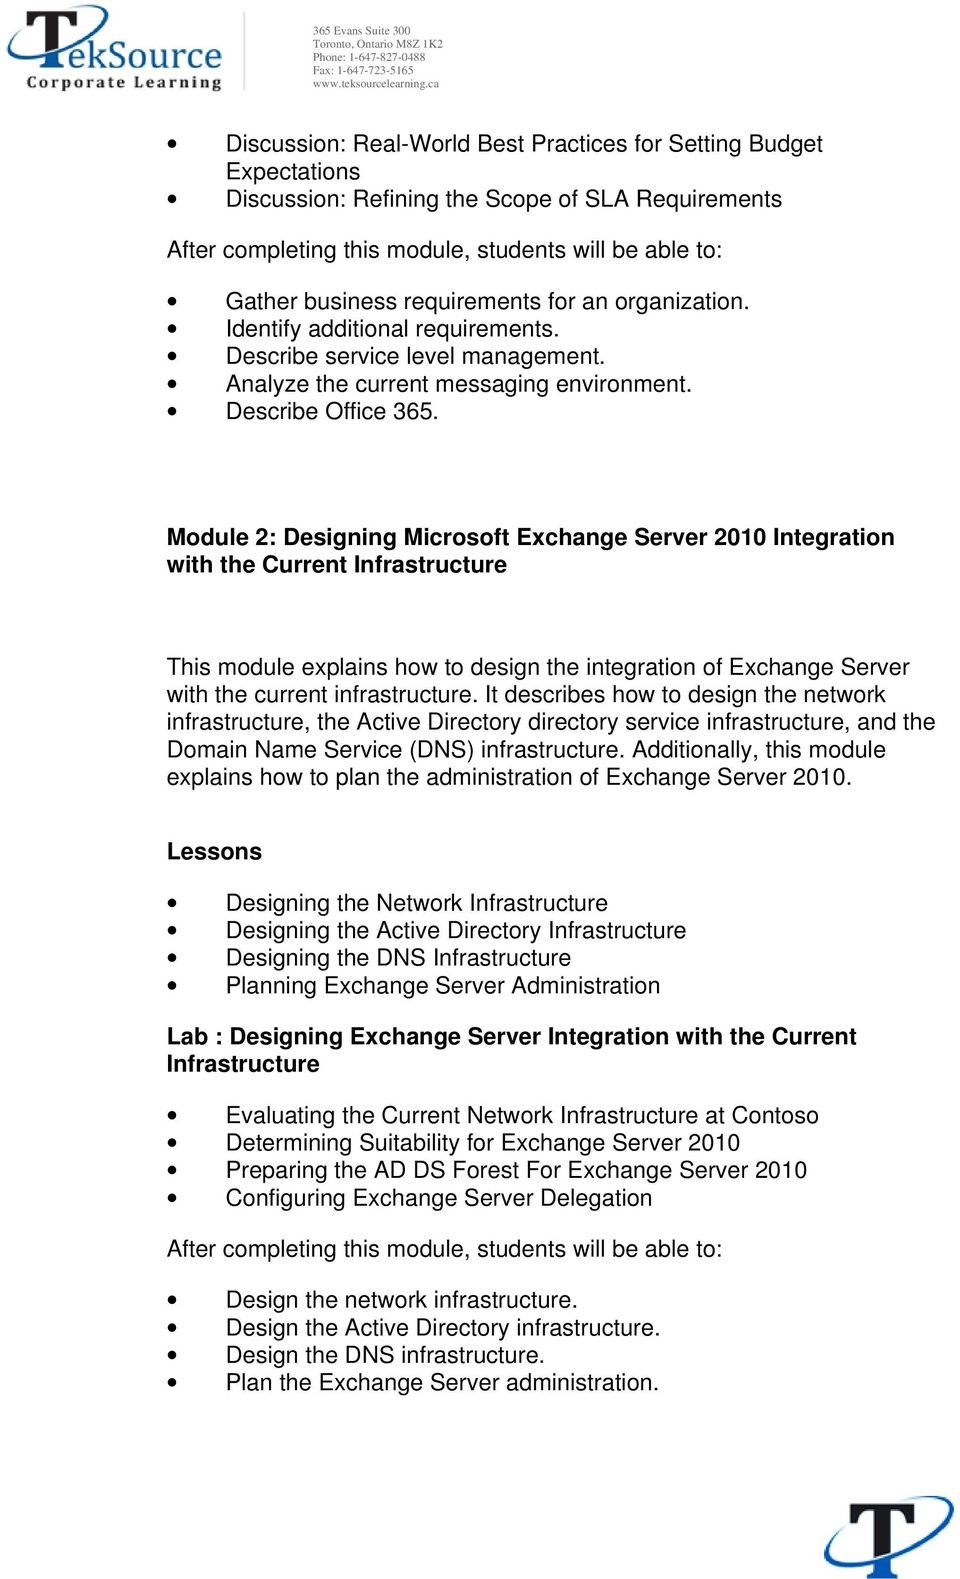 Module 2: Designing Microsoft Exchange Server 2010 Integration with the Current Infrastructure This module explains how to design the integration of Exchange Server with the current infrastructure.